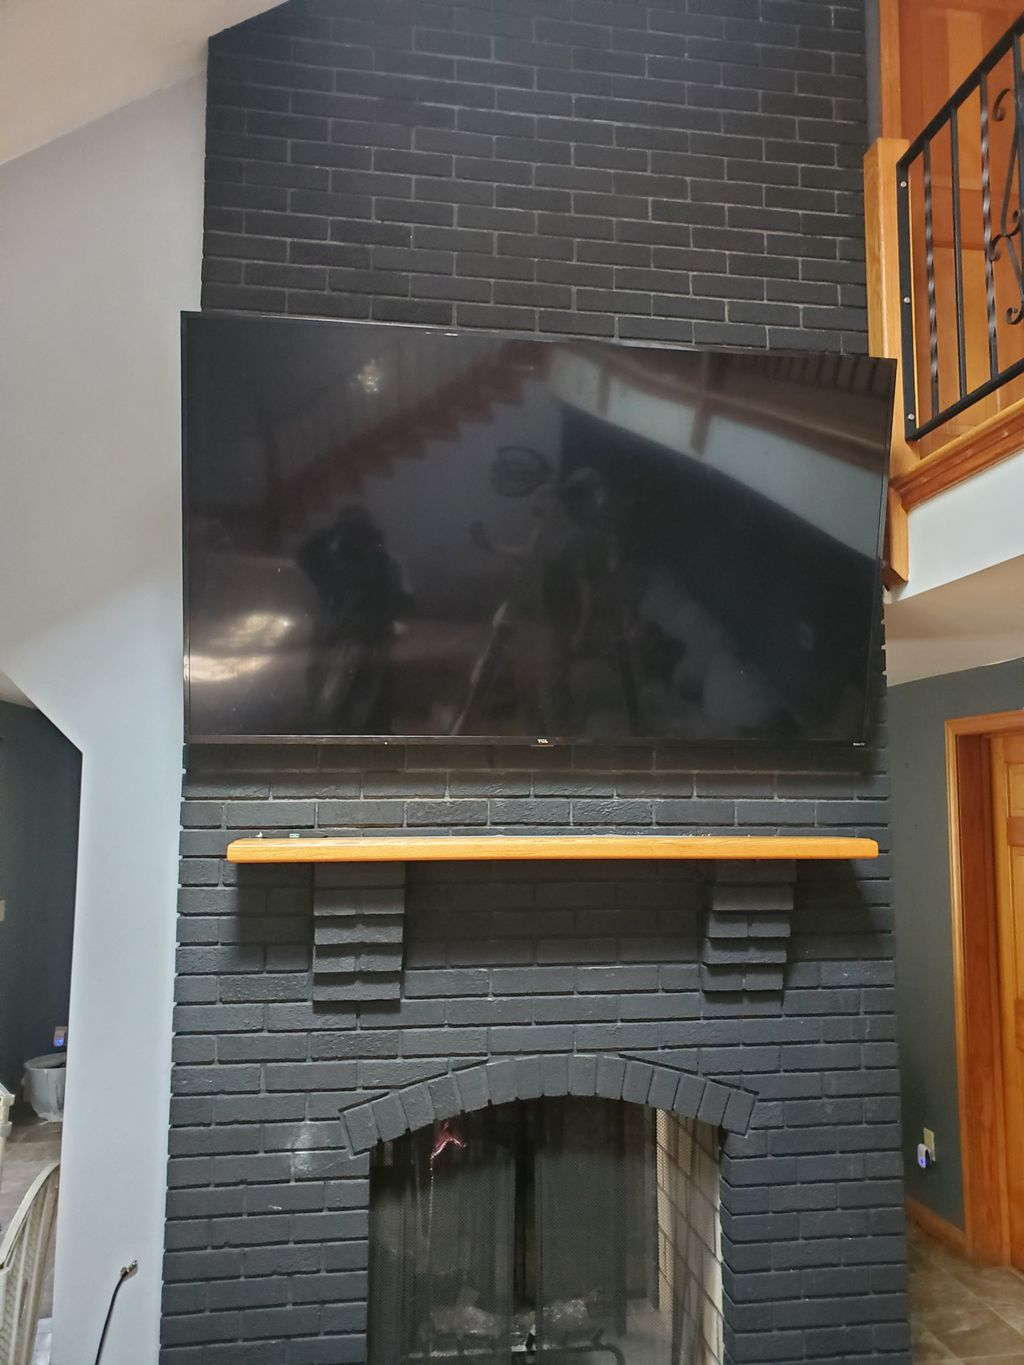 Tv mounting over fireplace 12 feet high